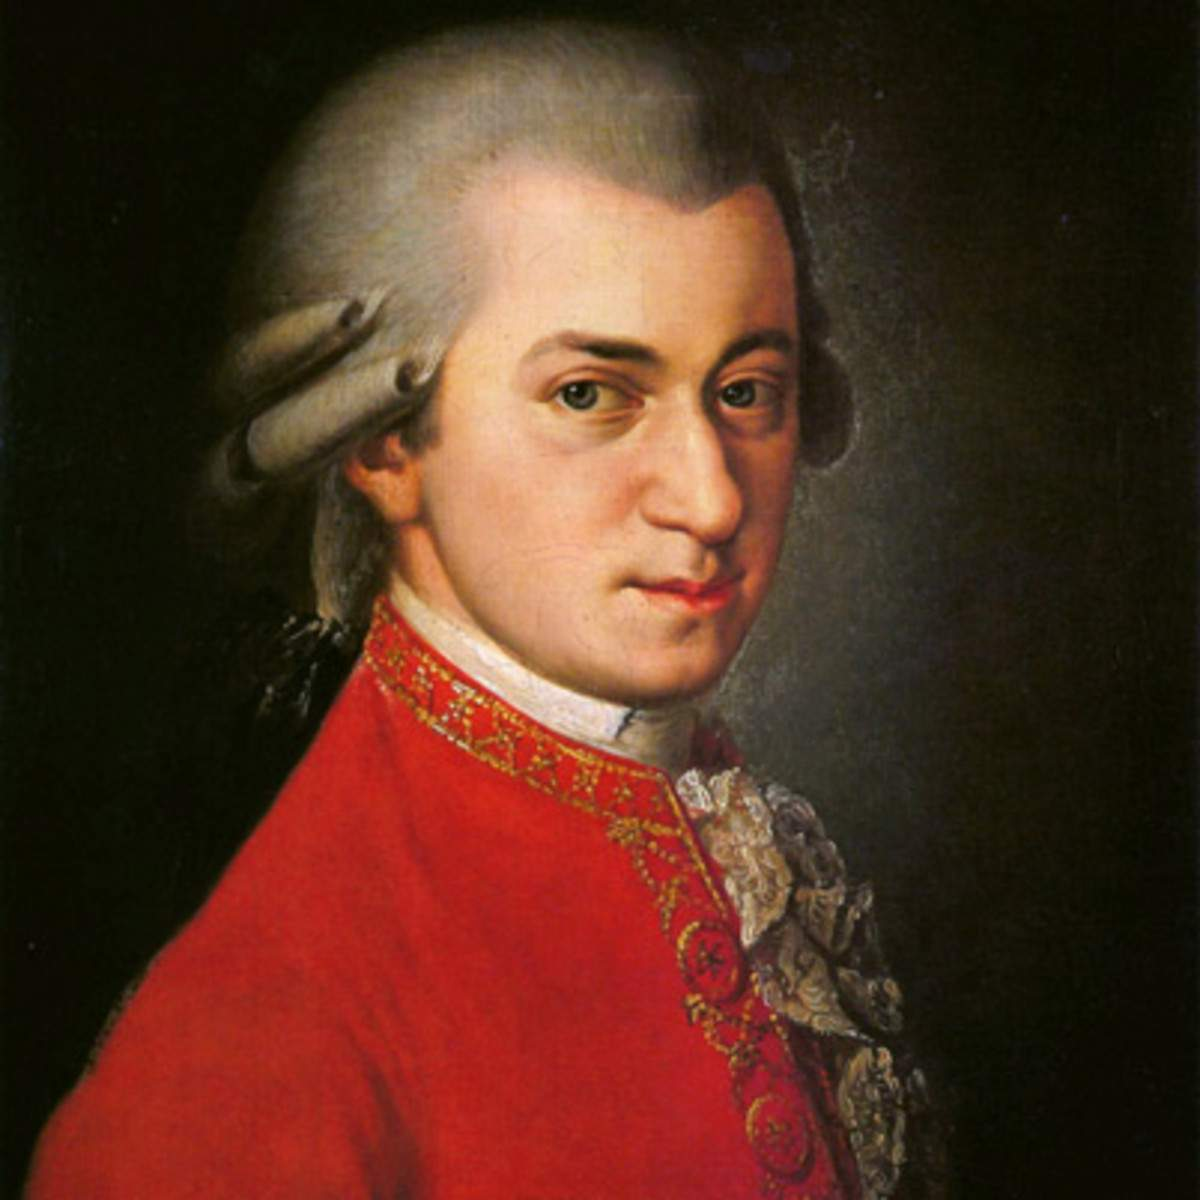 Does listening to Mozart really make you smarter?